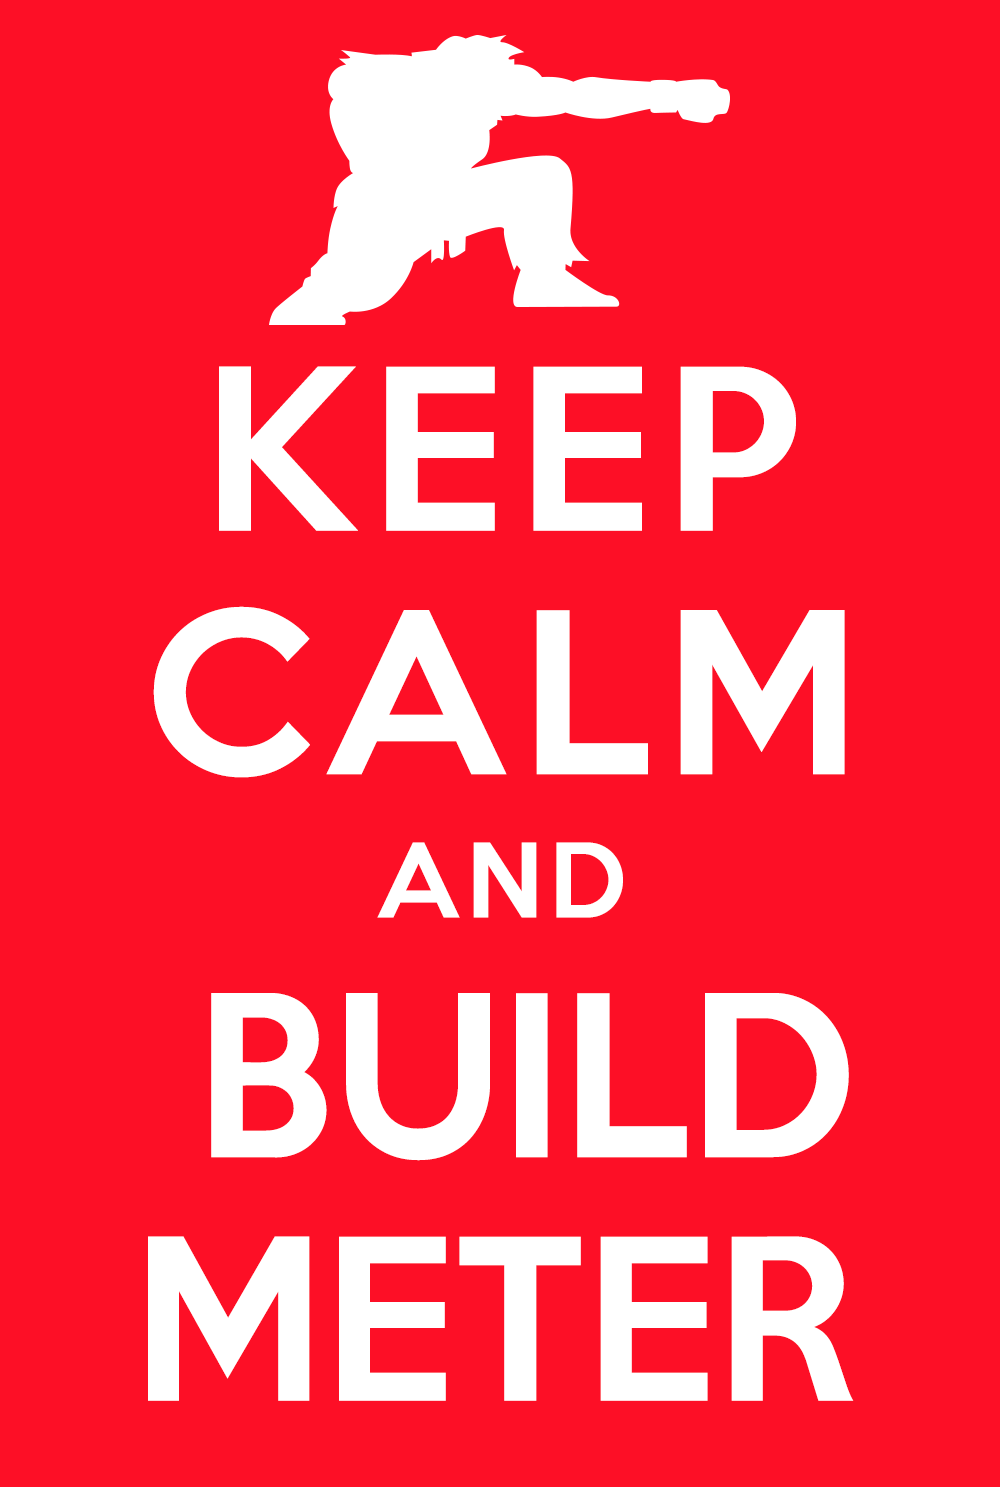 Keep Calm and Build Meter - ClipArt Best - ClipArt Best